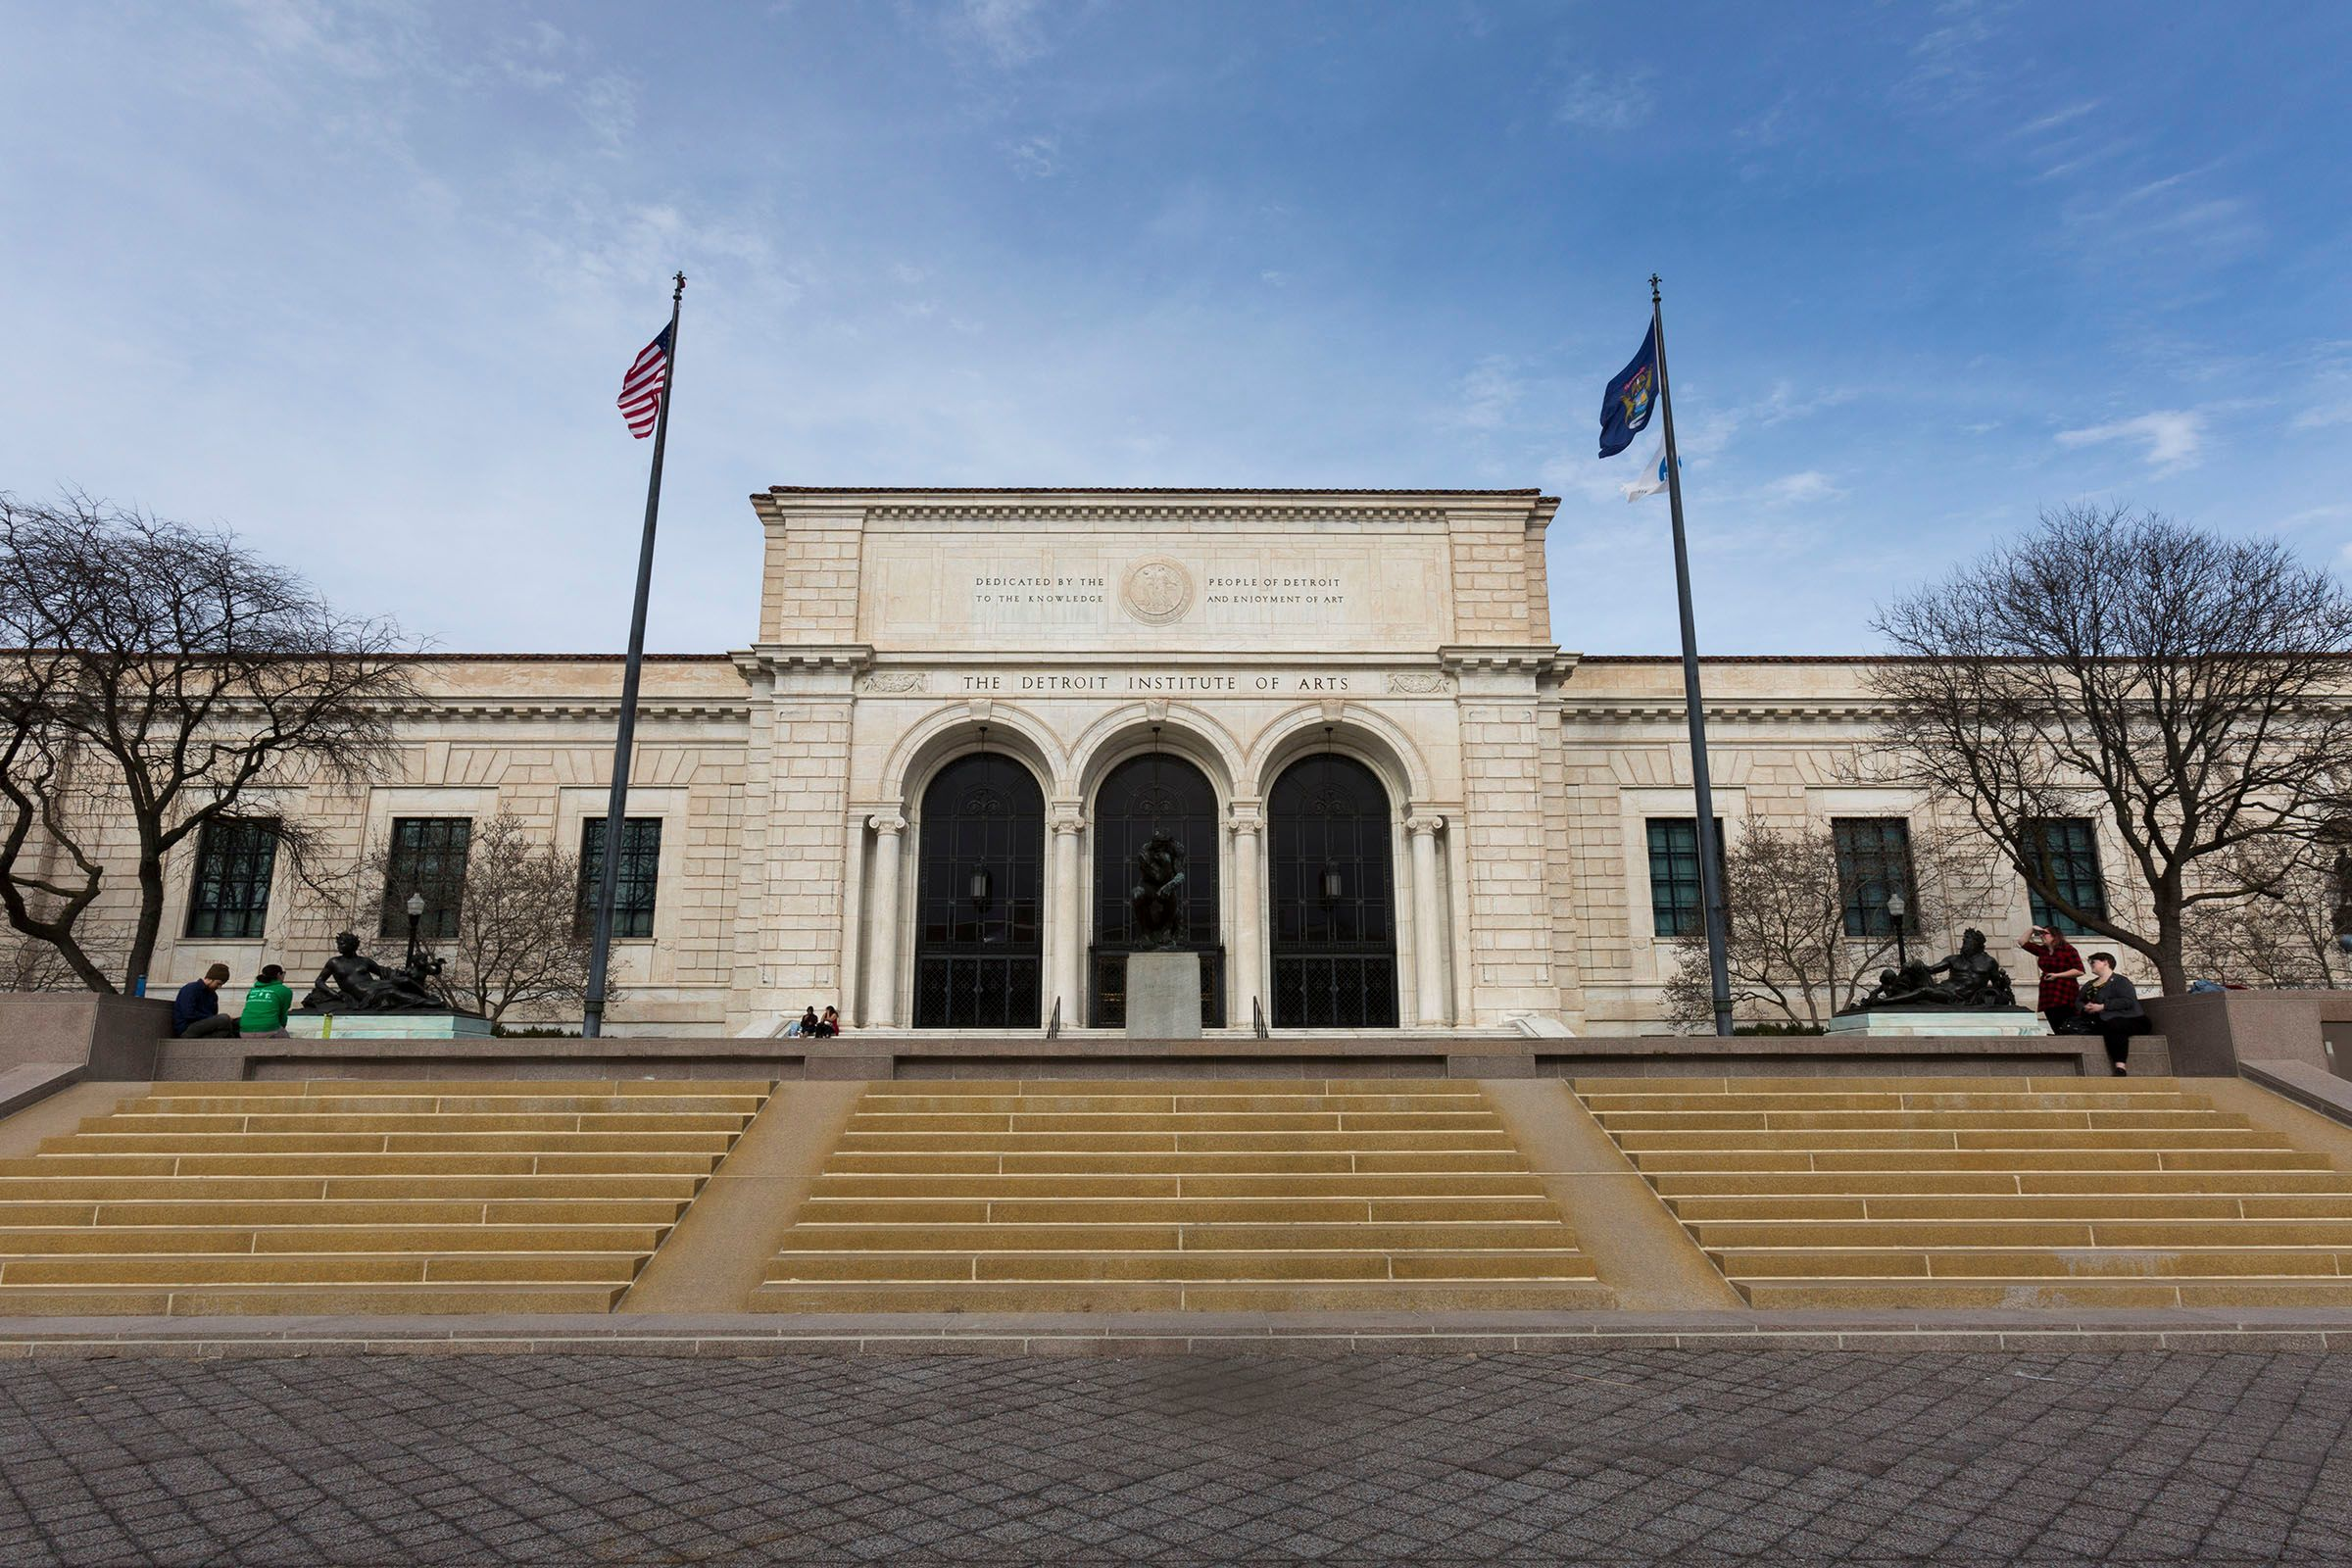 The Detroit Institute of Arts in April 2017 in Detroit.